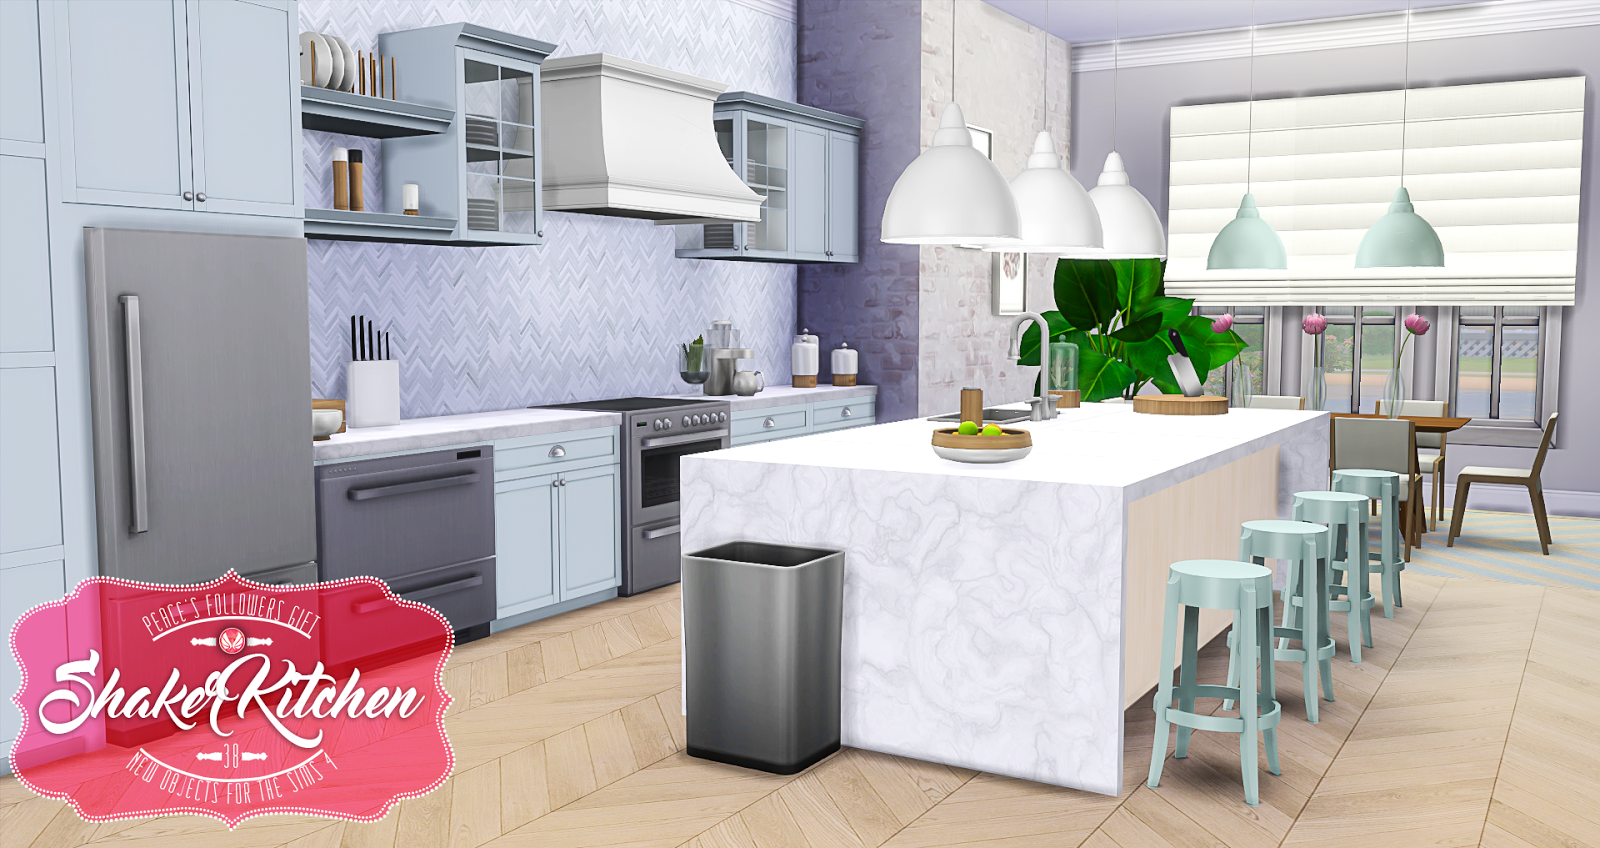 Sims 4 Cc 39s The Best Shaker Kitchen By Peacemaker Ic